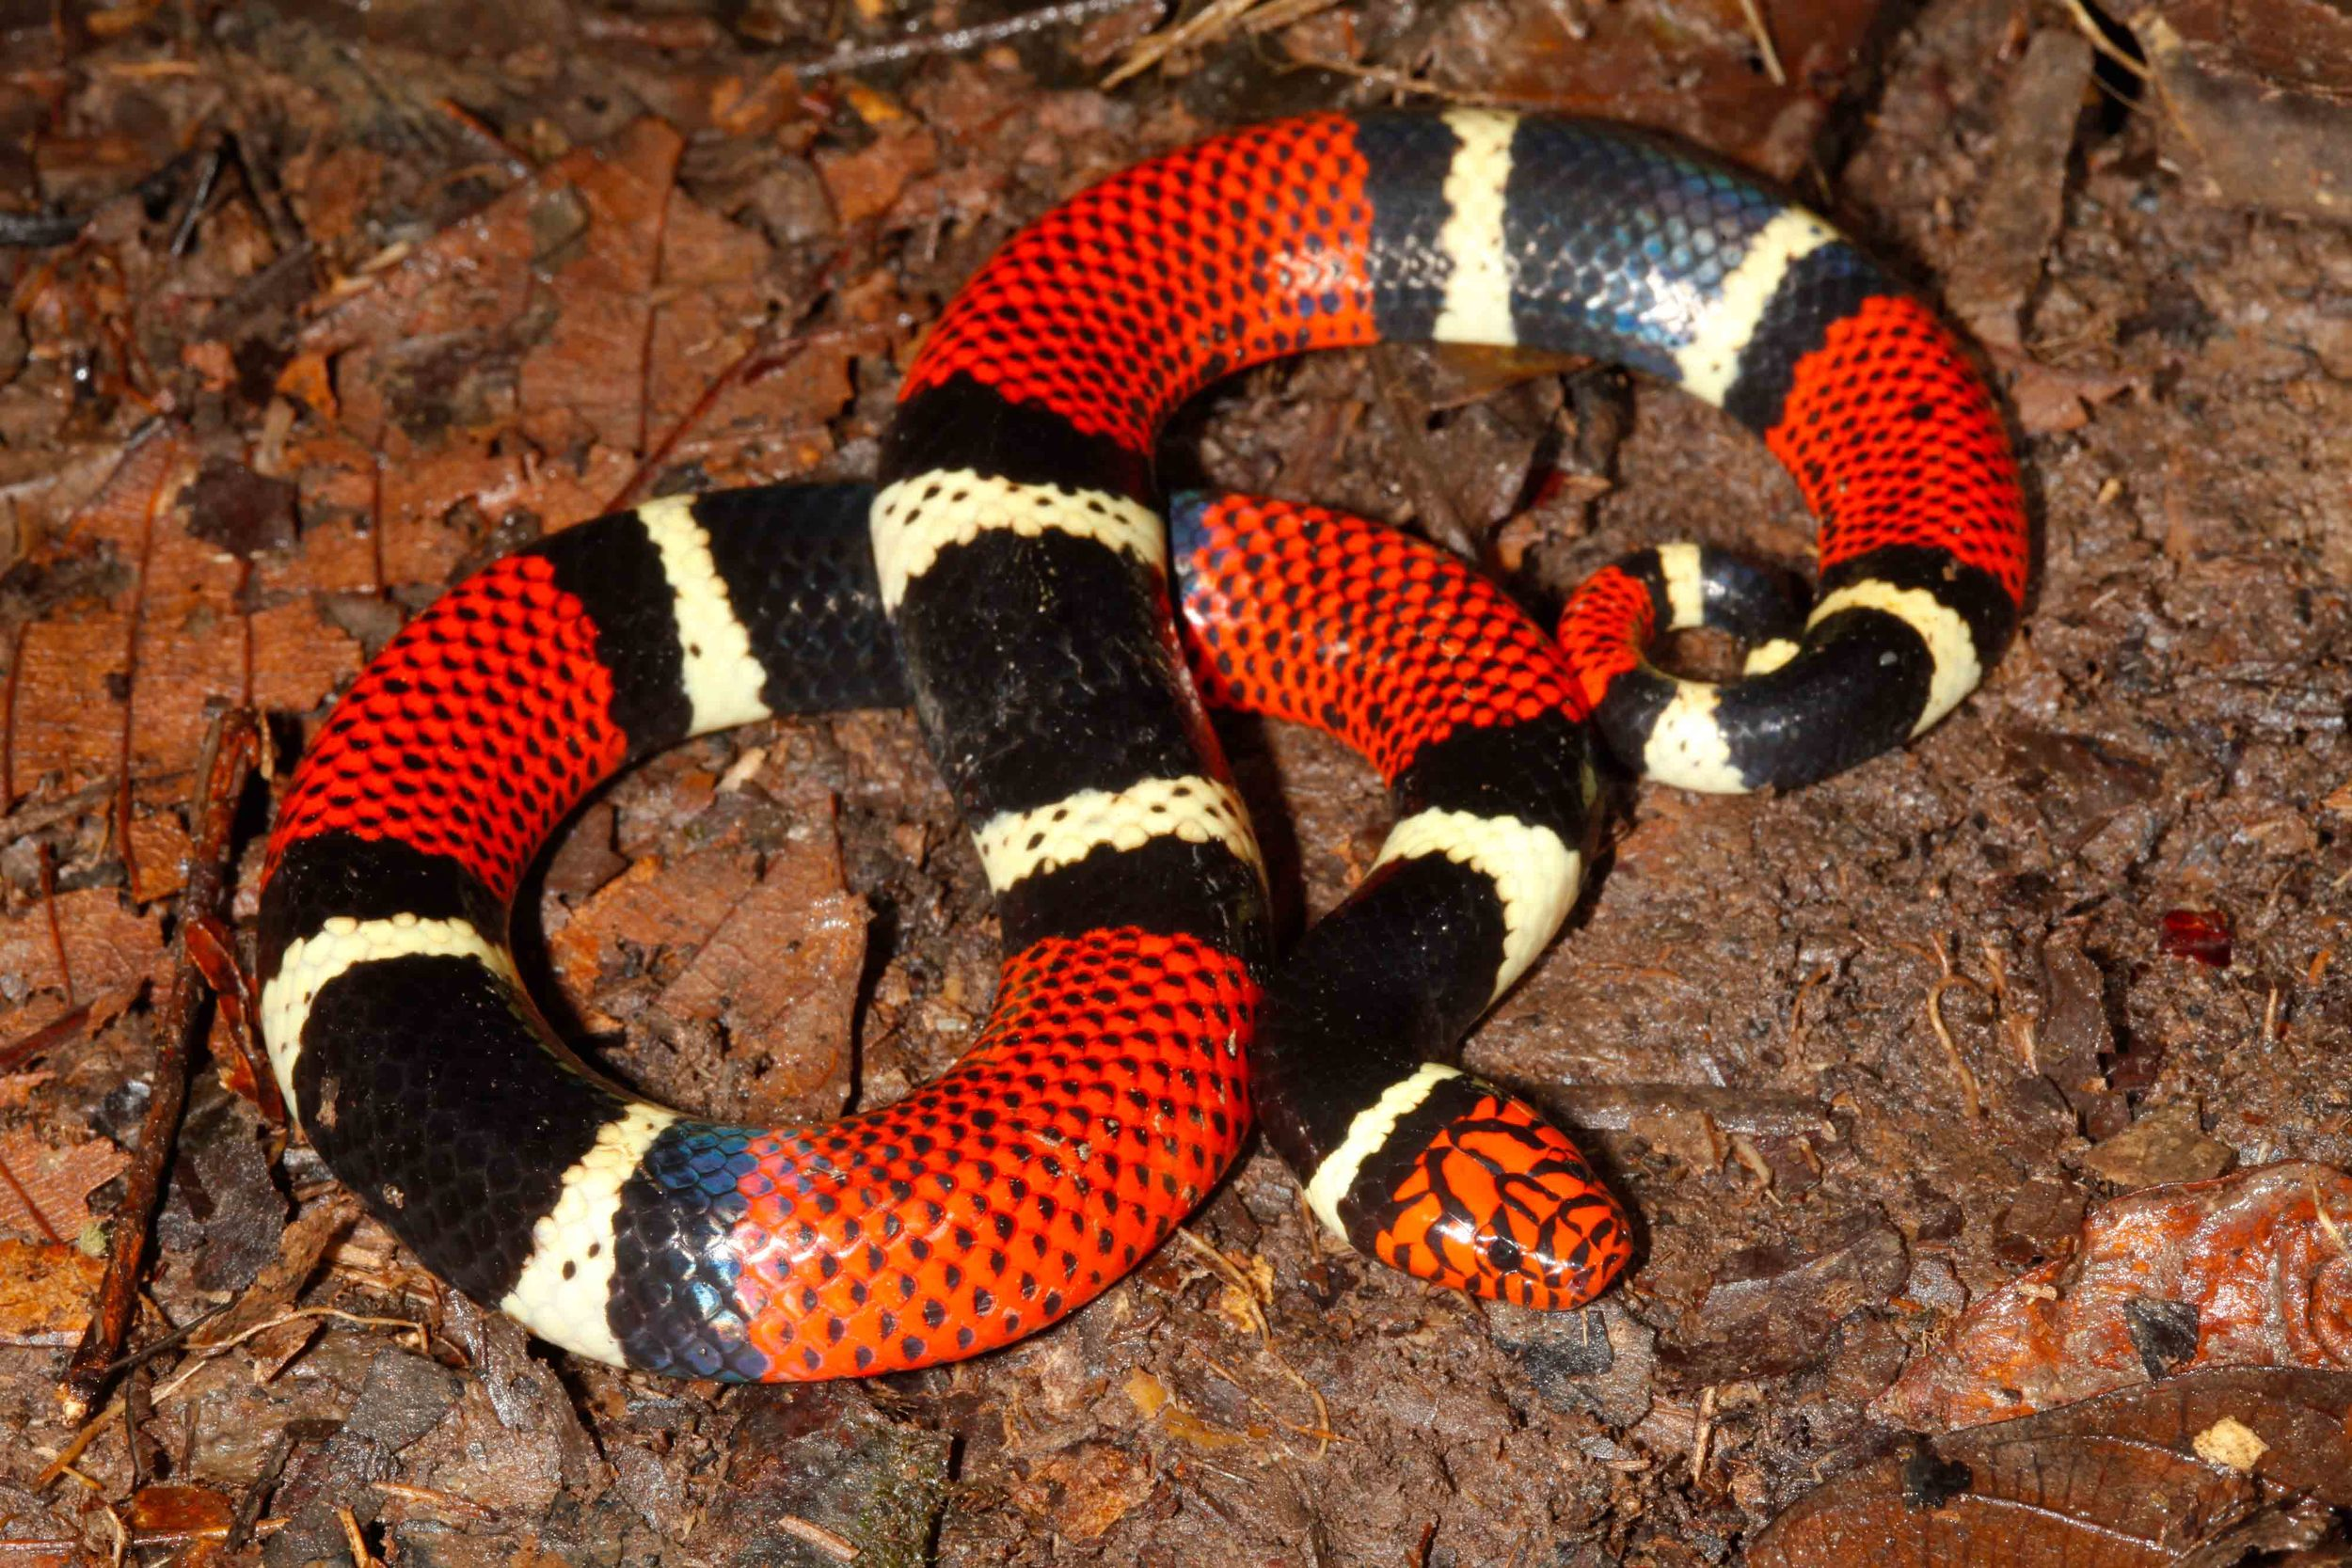 Micrurus surinamensis, Aquatic Coral Snake (Photo by Matt Cage)